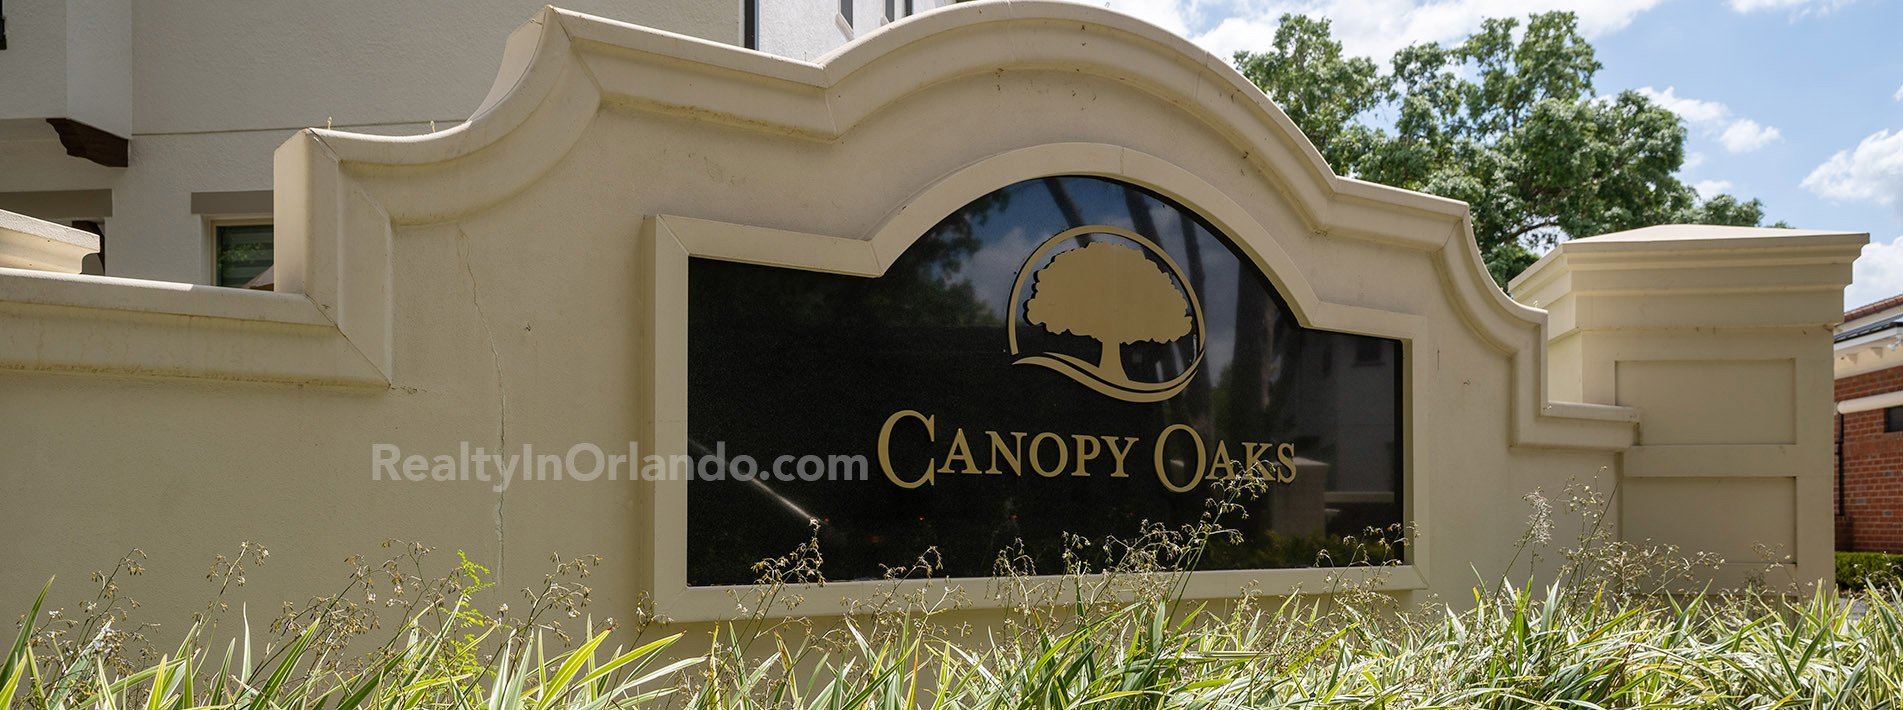 Canopy Oaks Winter Garden Real Estate